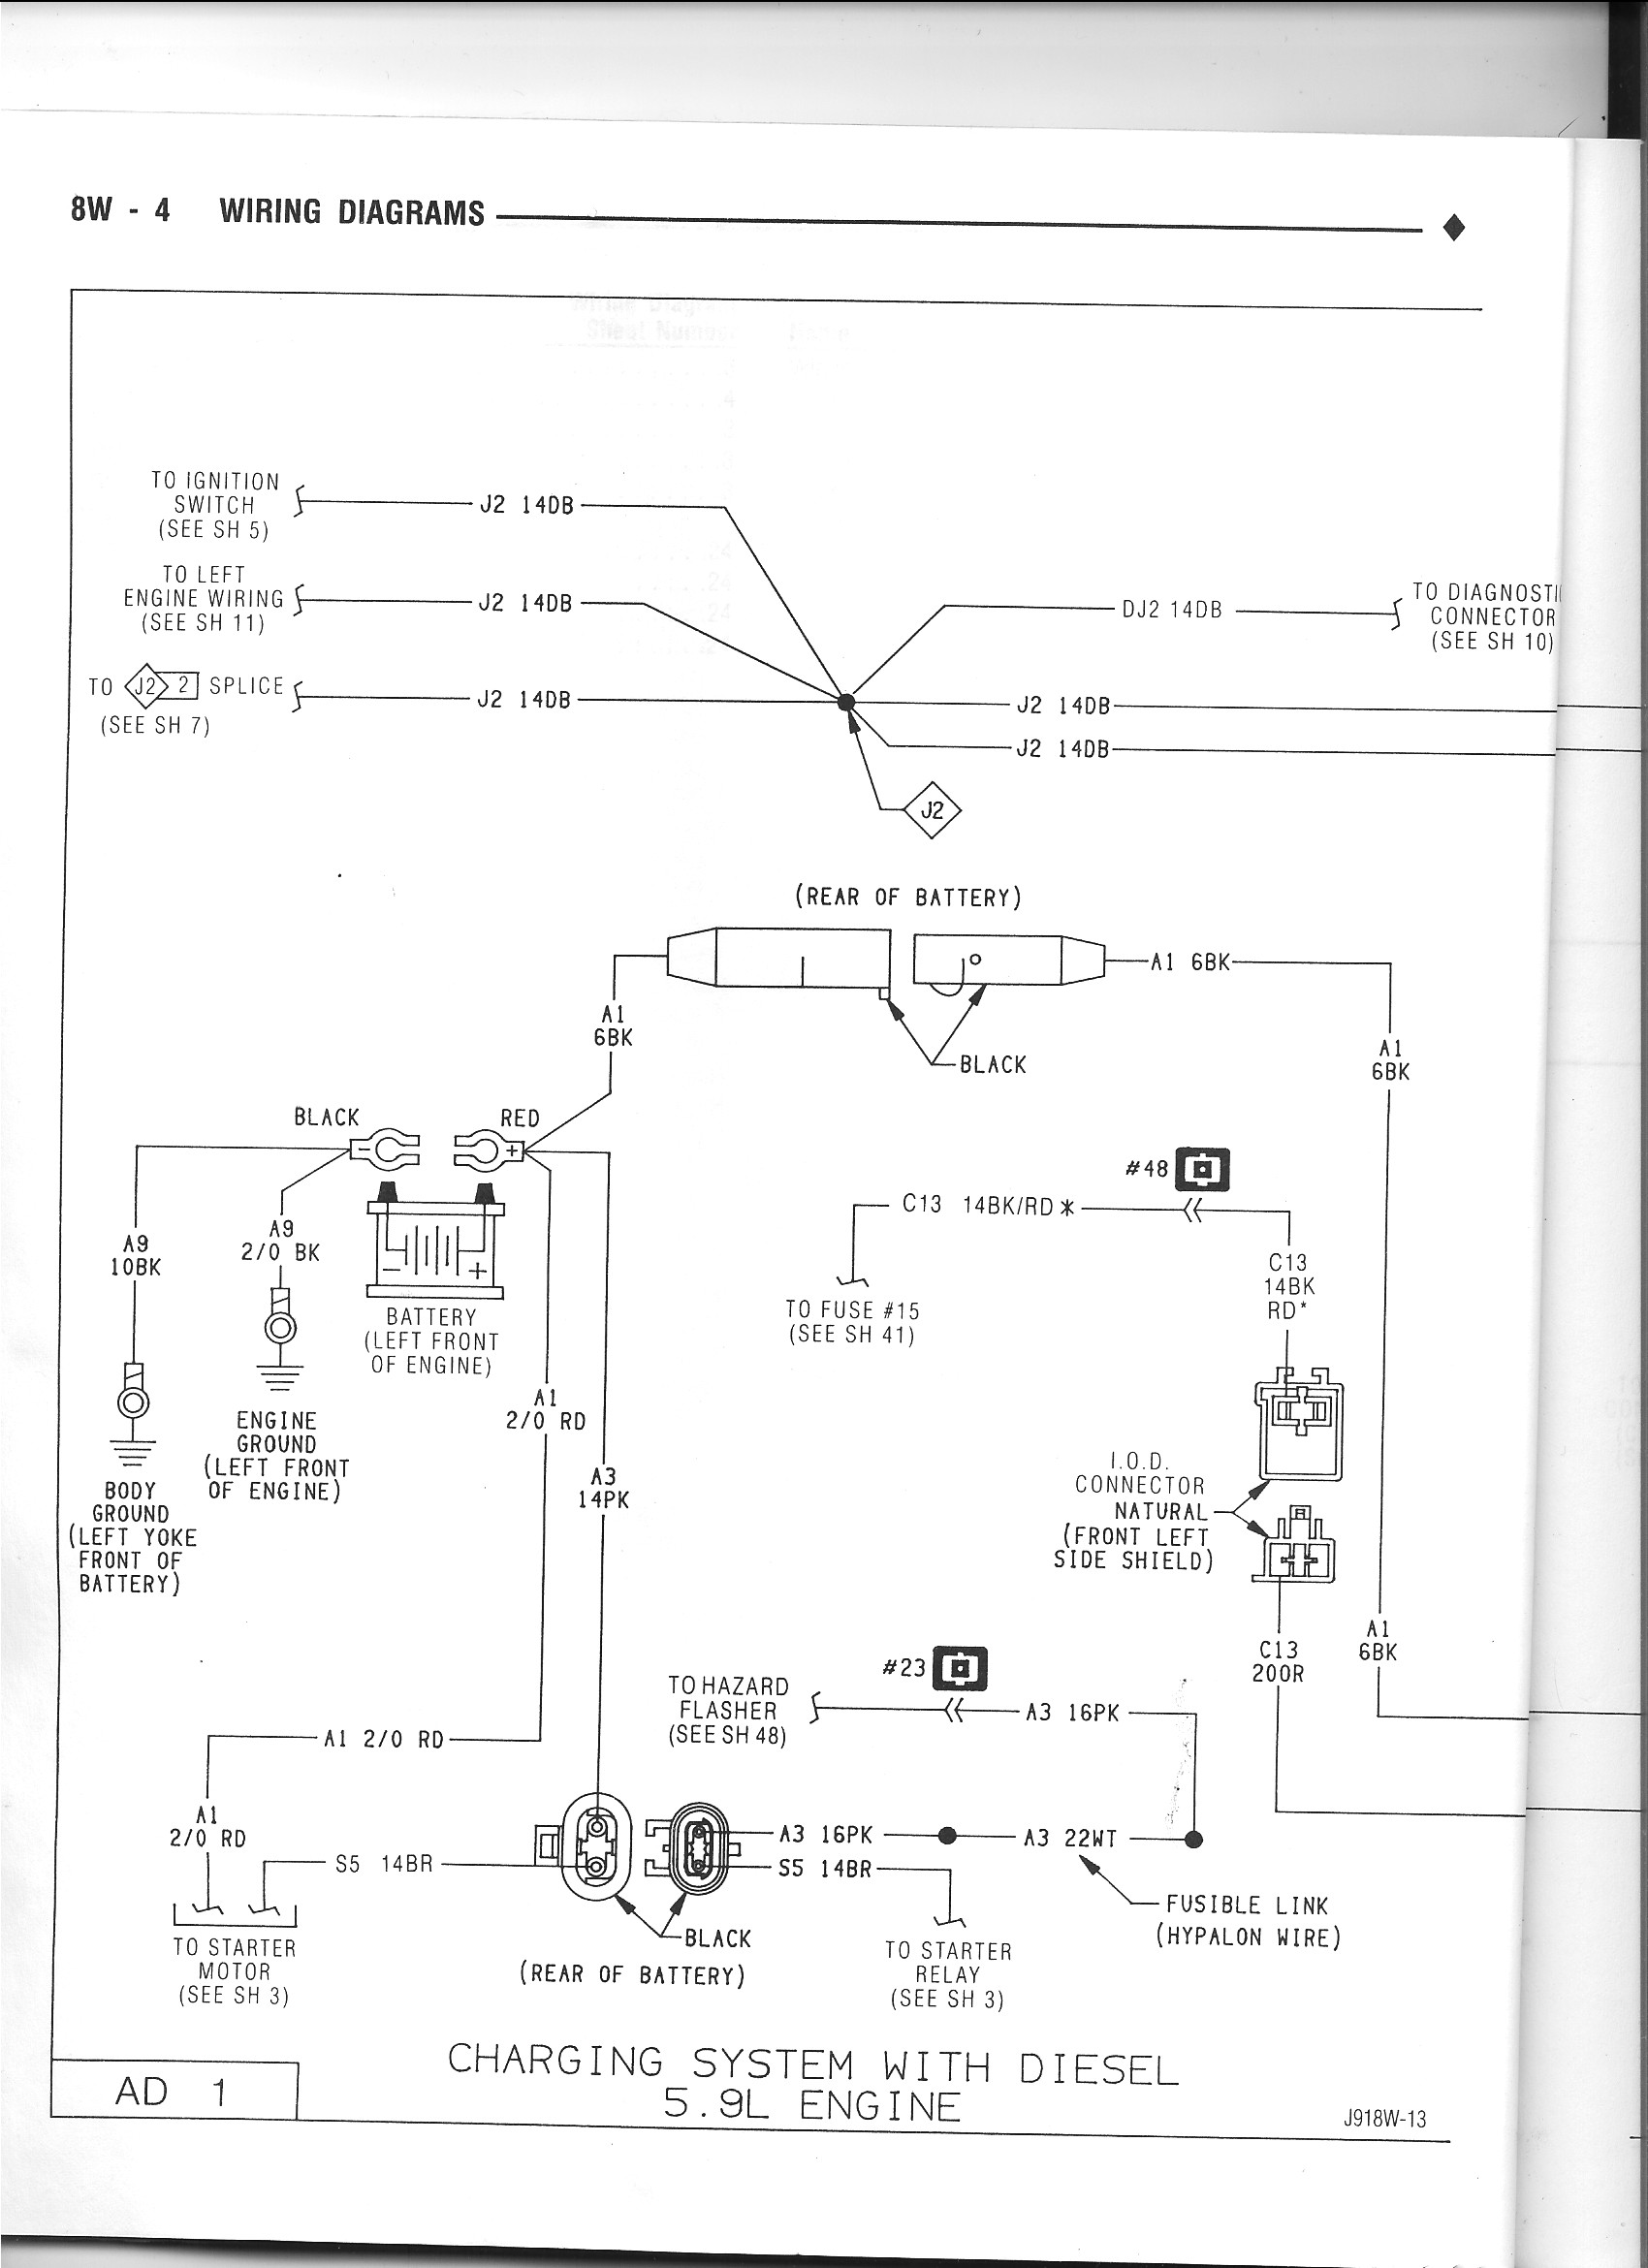 1992 Dodge Cummins Alternator Wiring Diagram Basic Guide 1993 Truck Example Electrical U2022 Rh Emilyalbert Co Automatic